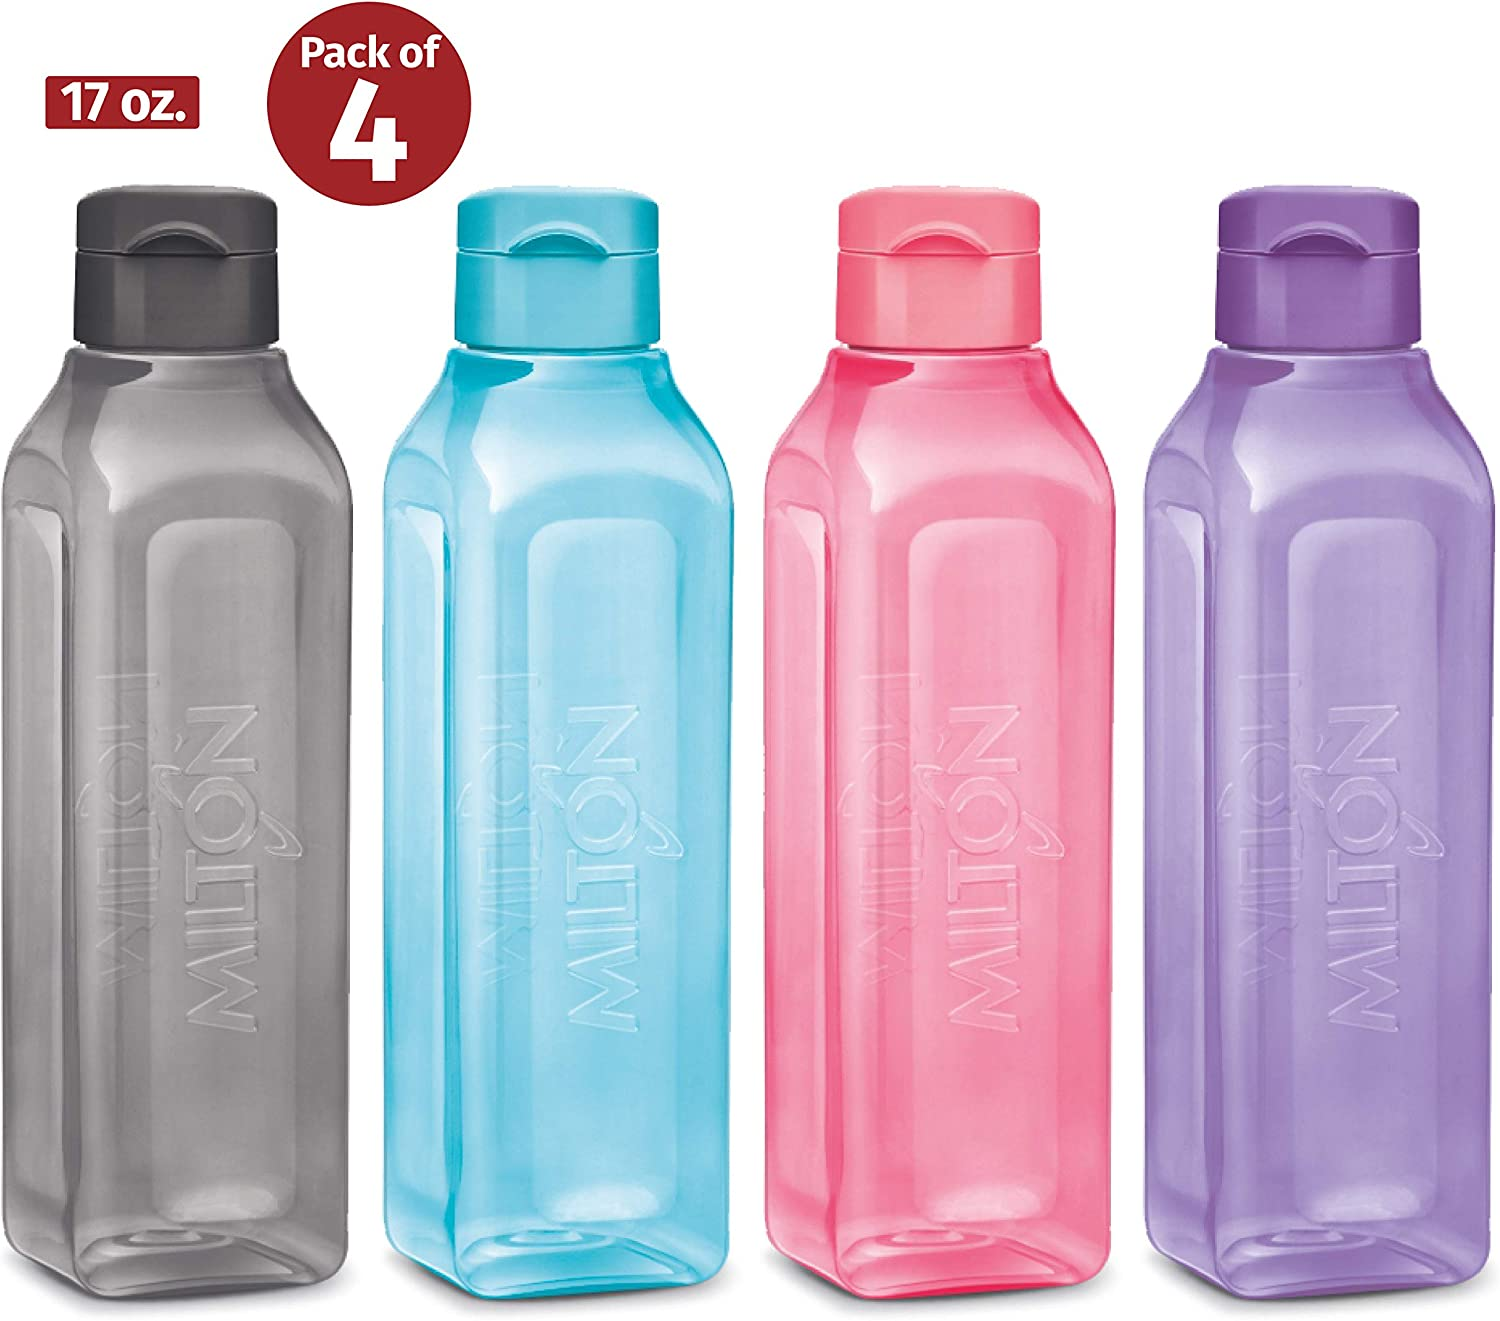 Sports Water Bottle - Milton Kids Reusable Leakproof 4-pack Plastic Wide Mouth Large Big Drink Bottle BPA & Leak Free For Cycling Camping Hiking Gym Yoga